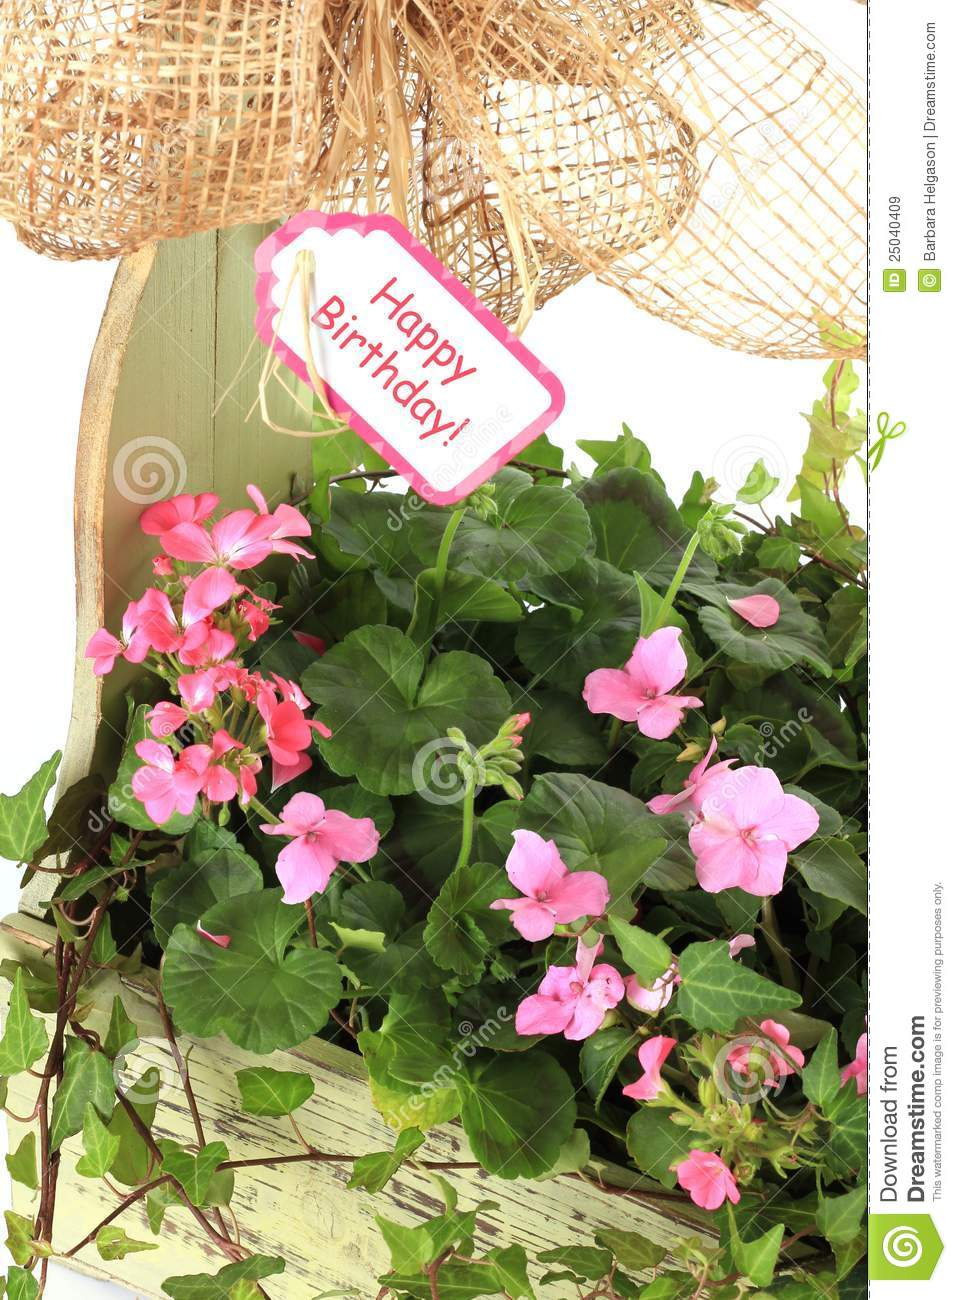 happy birthday flowers royalty free stock images  image, Beautiful flower